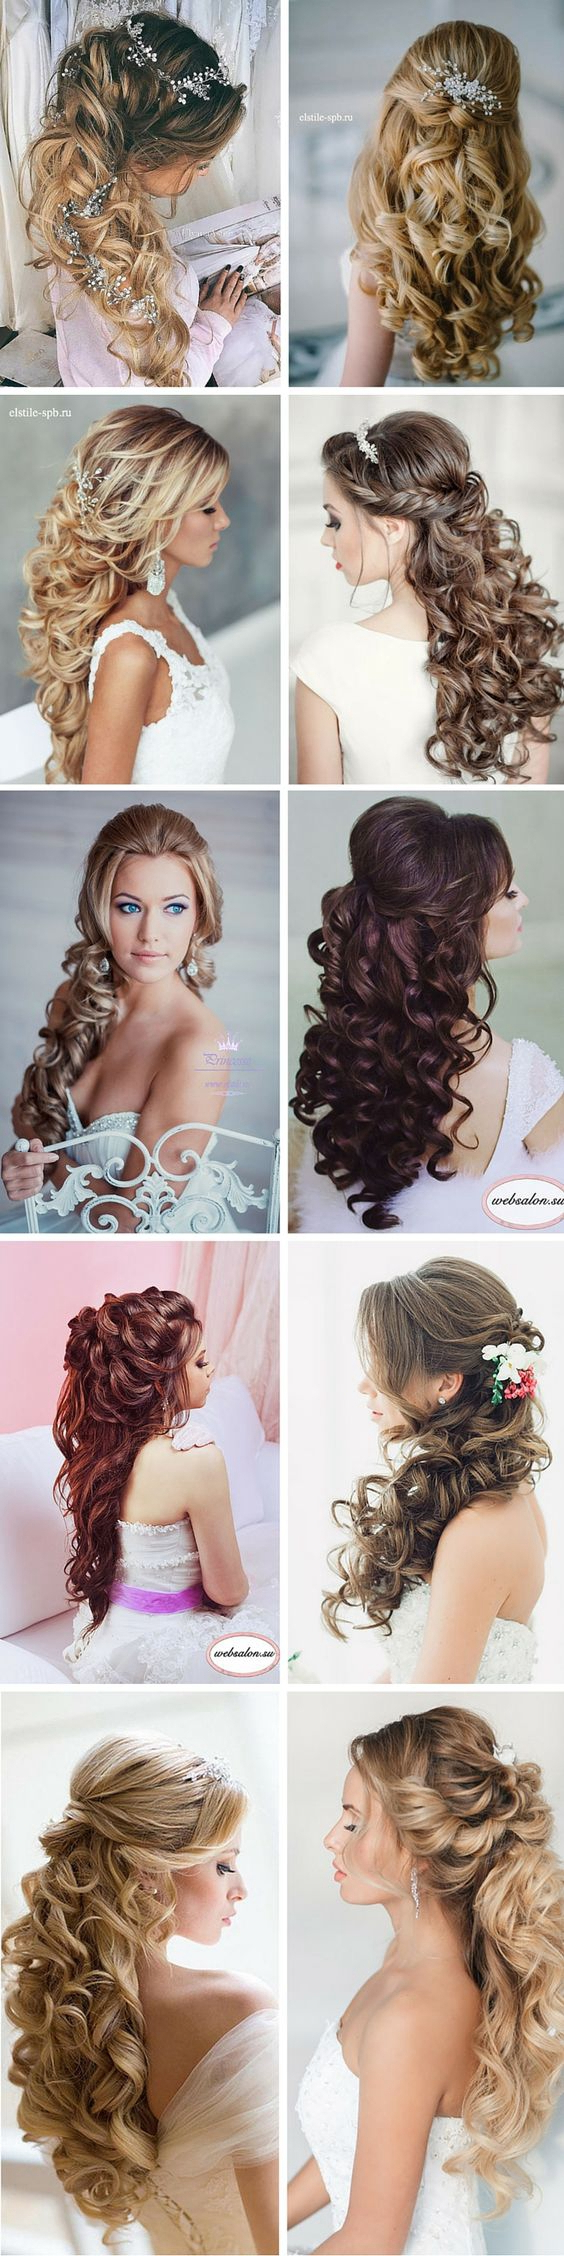 Widely Used Large Curl Updos For Brides Intended For 100+ Romantic Long Wedding Hairstyles 2019 – Curls, Half Up, Updos (View 2 of 20)